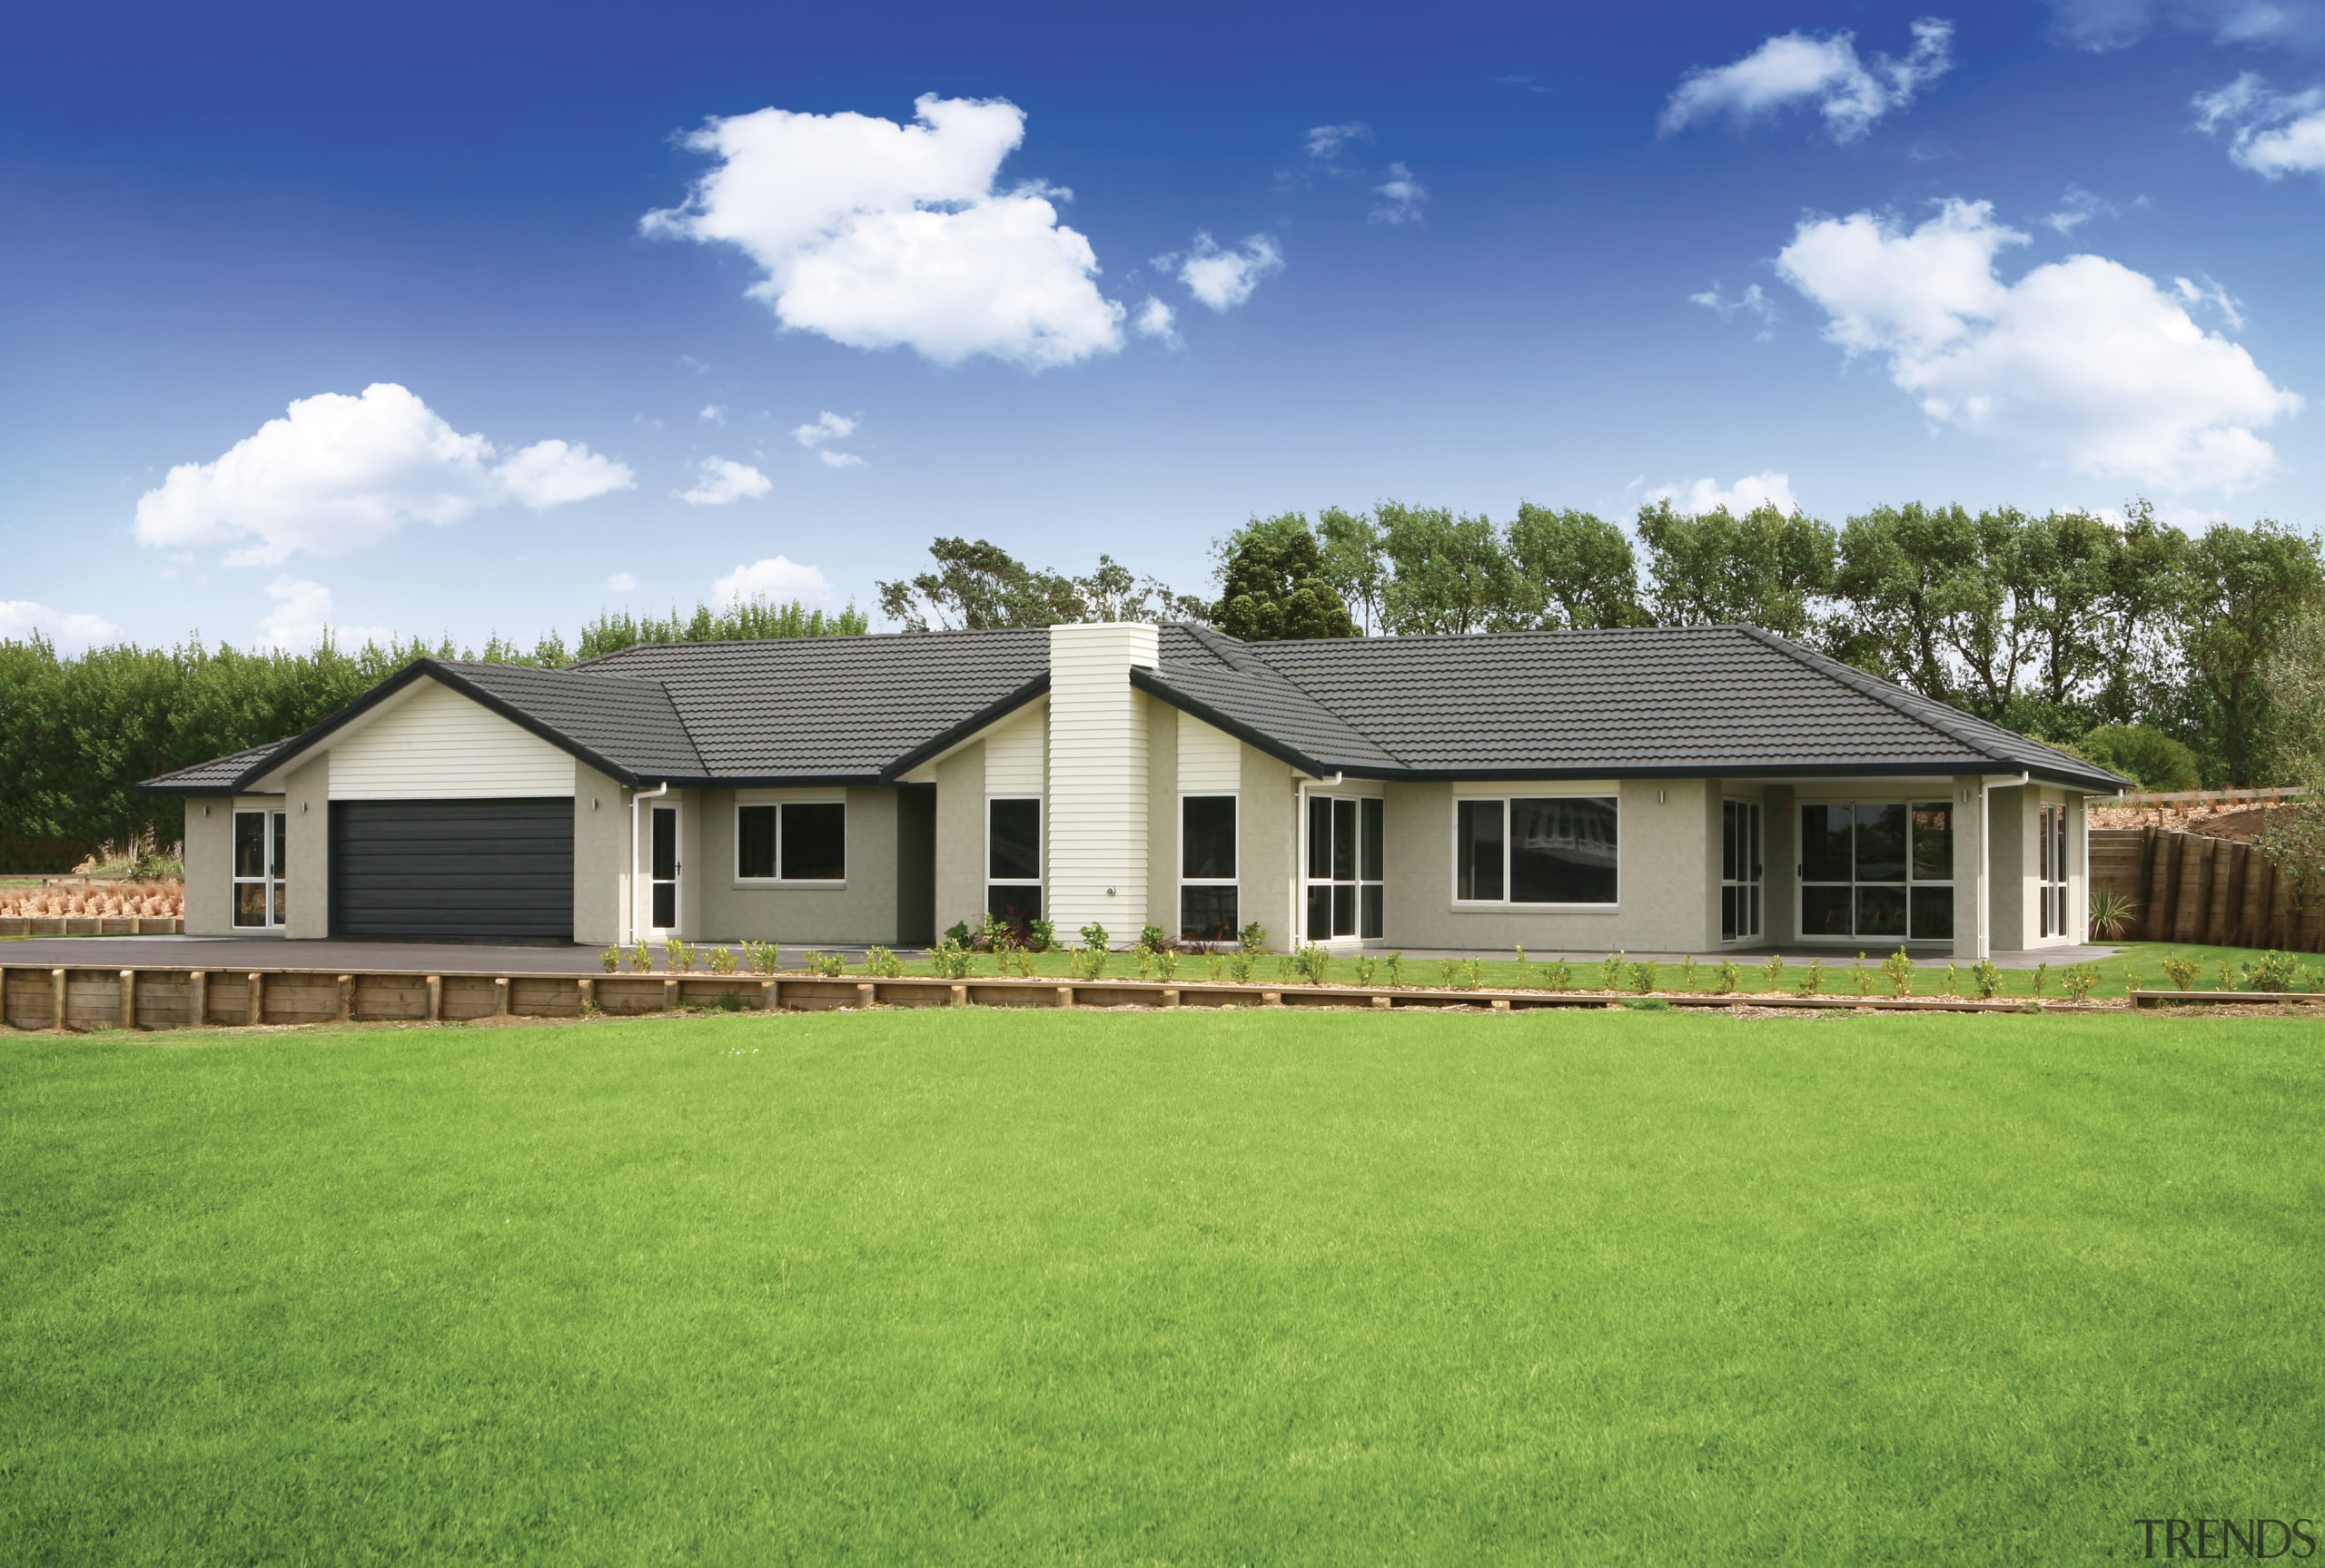 Exterior view of this Platinum Homes show home backyard, cottage, elevation, estate, facade, farmhouse, grass, home, house, land lot, landscape, lawn, property, real estate, residential area, roof, shed, siding, sky, window, yard, green